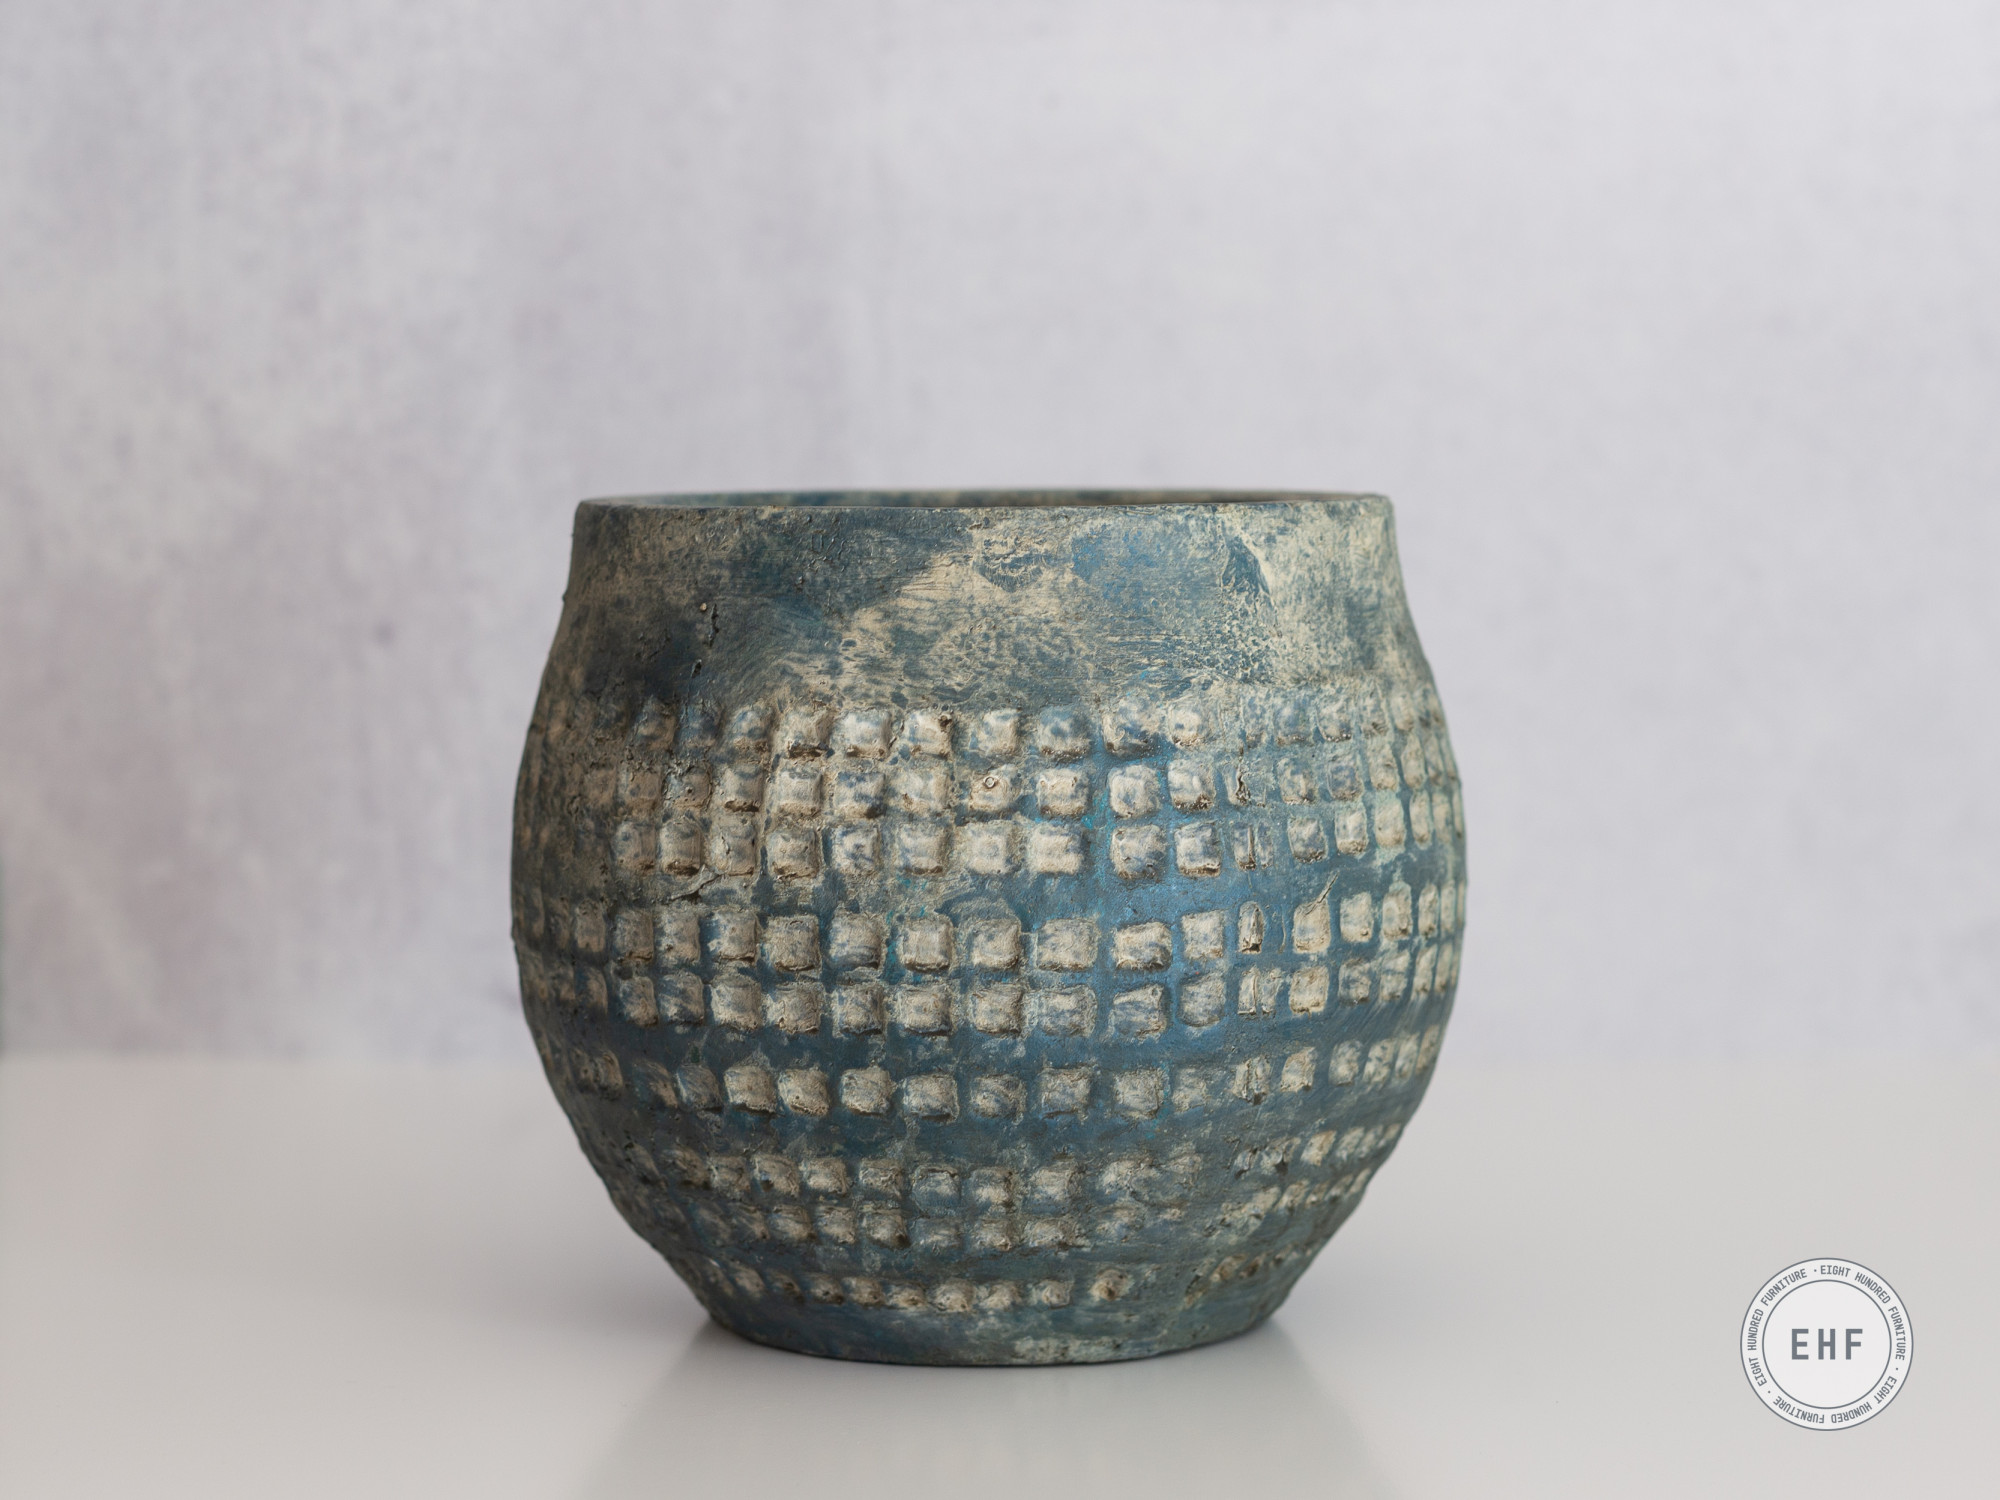 Teal ceramic pot with honeycomb pattern